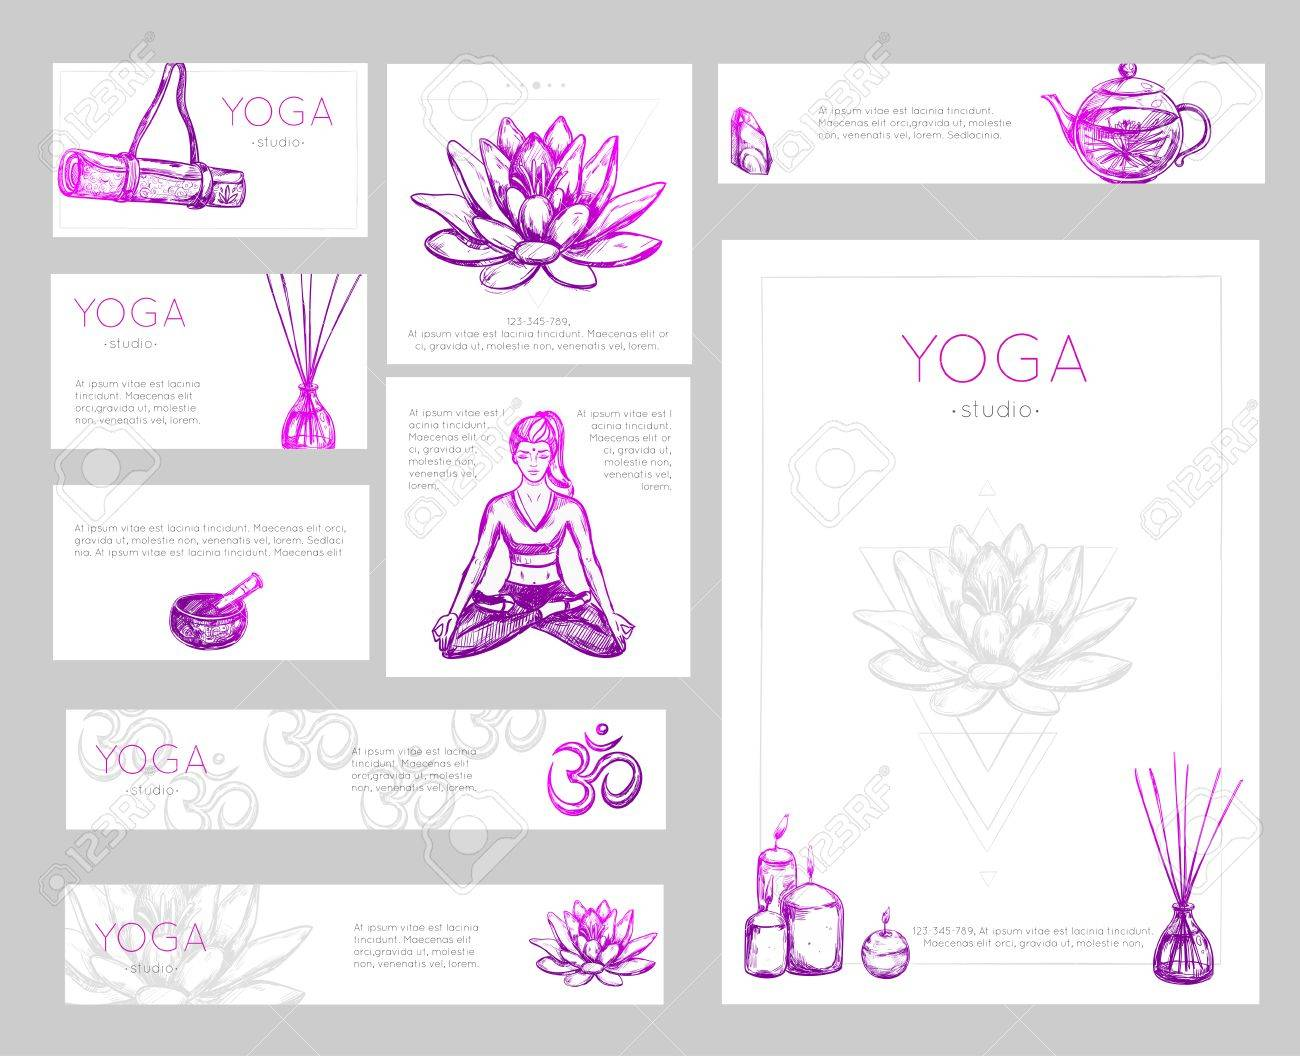 Colored Yoga Flyer Design With Yoga Studio Descriptions And Place ...